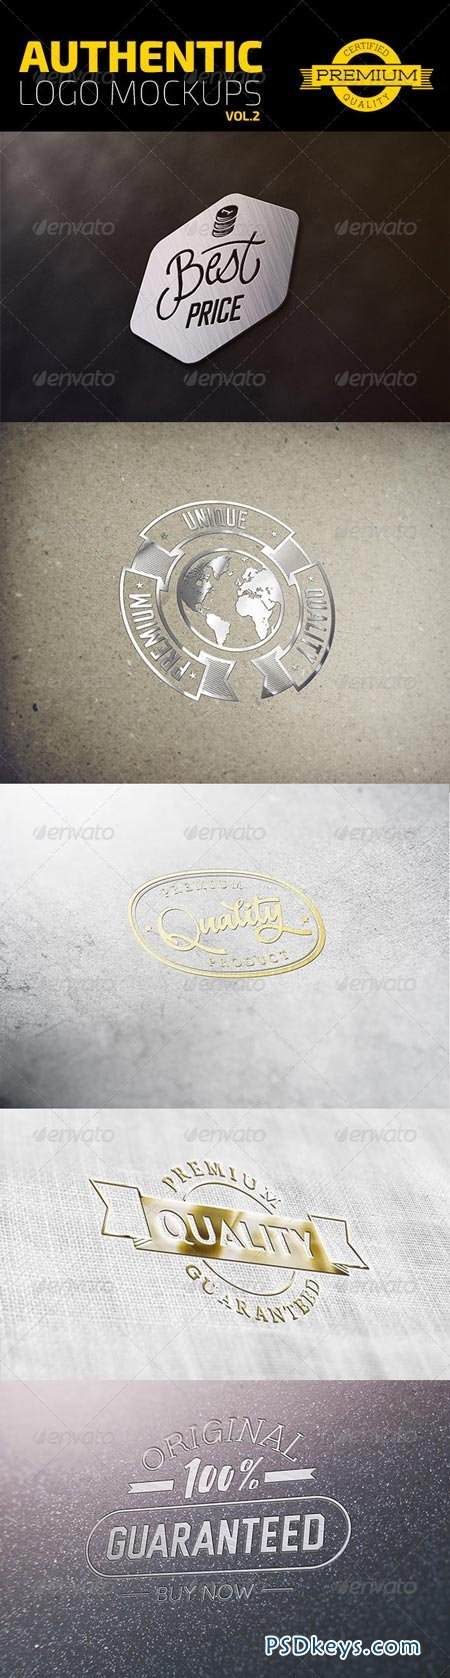 Authentic Logo Mockups Vol. 2 6903276